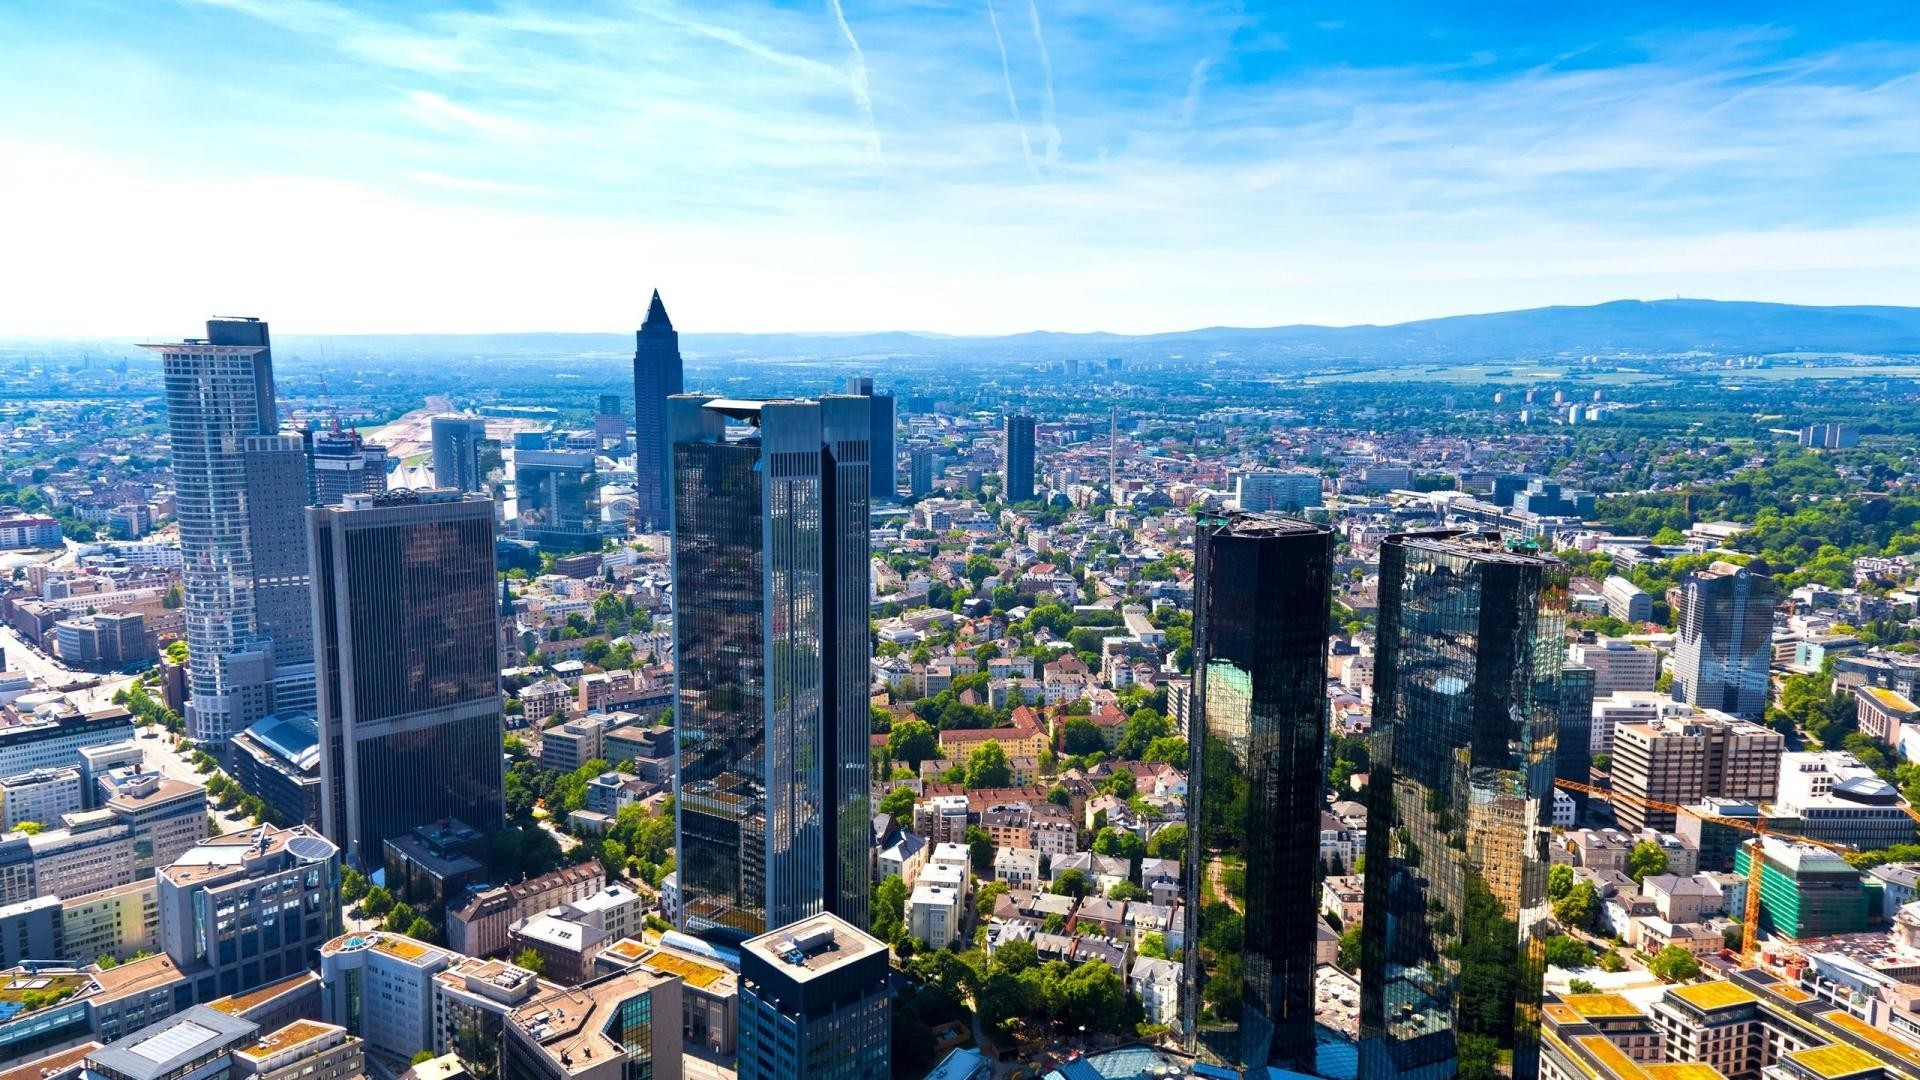 cityscapes germany Skyscrapers frankfurt HD Wallpaper